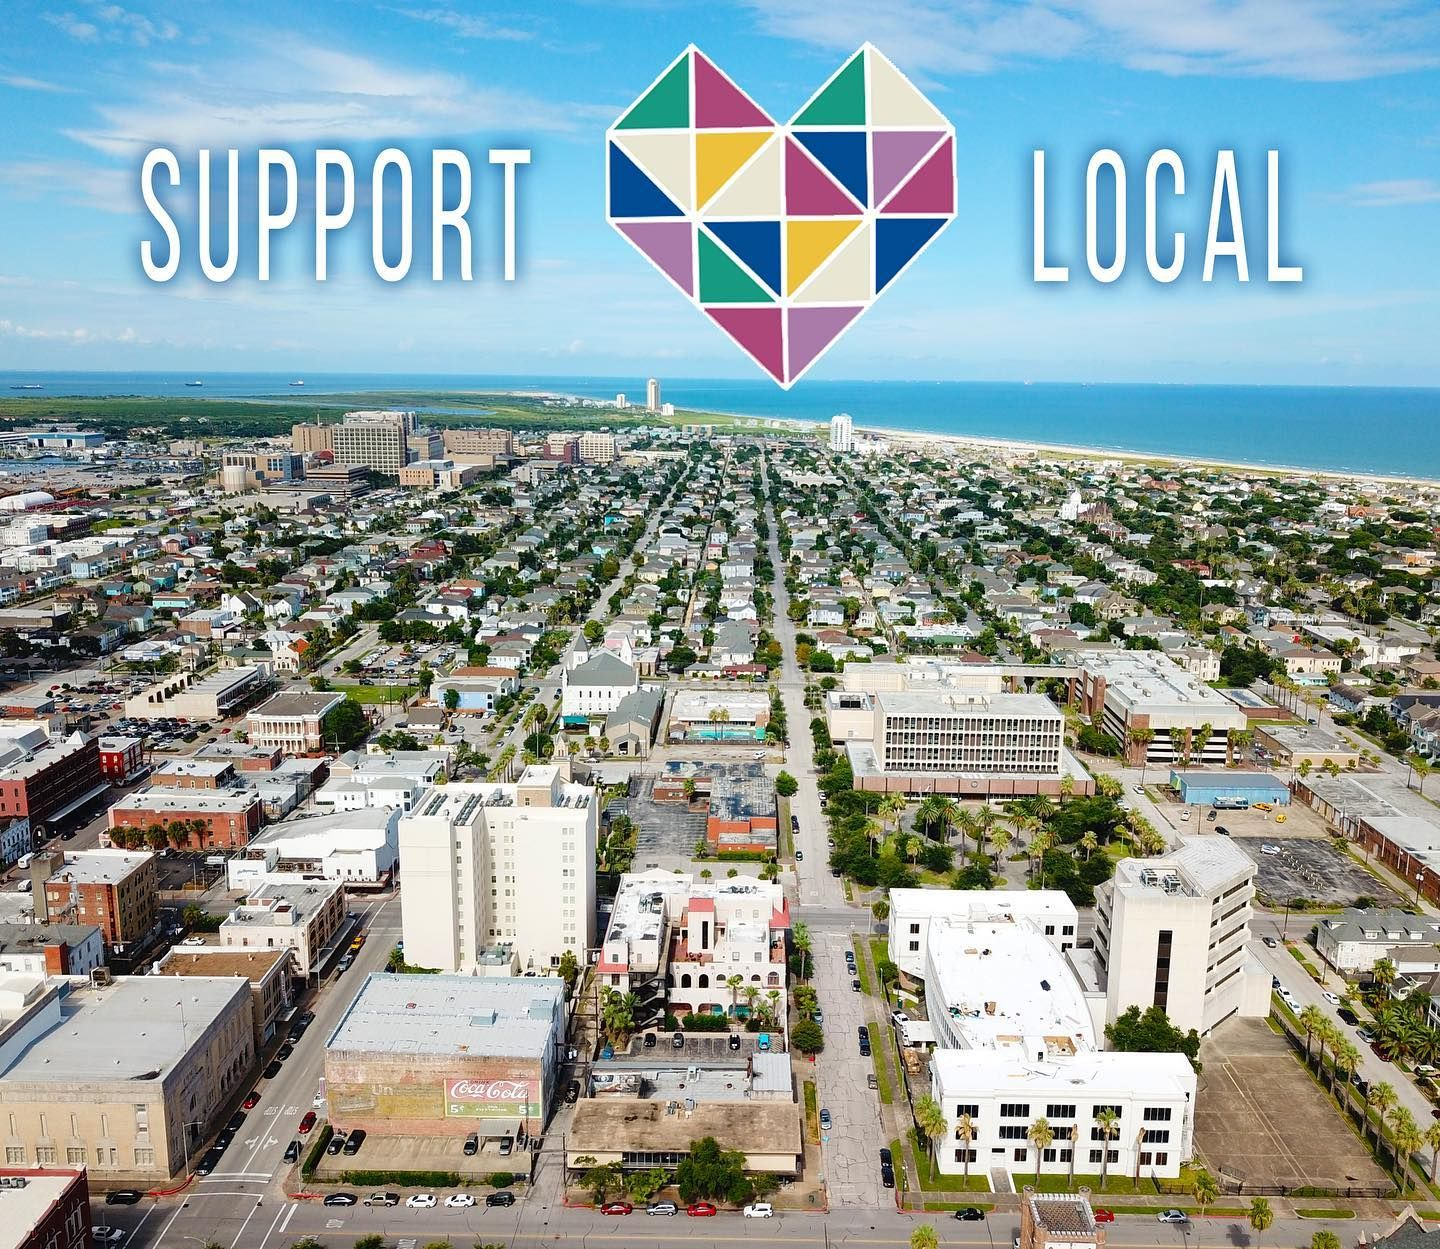 Galveston Is A Town Known For Its Wonderful Local Businesses Now